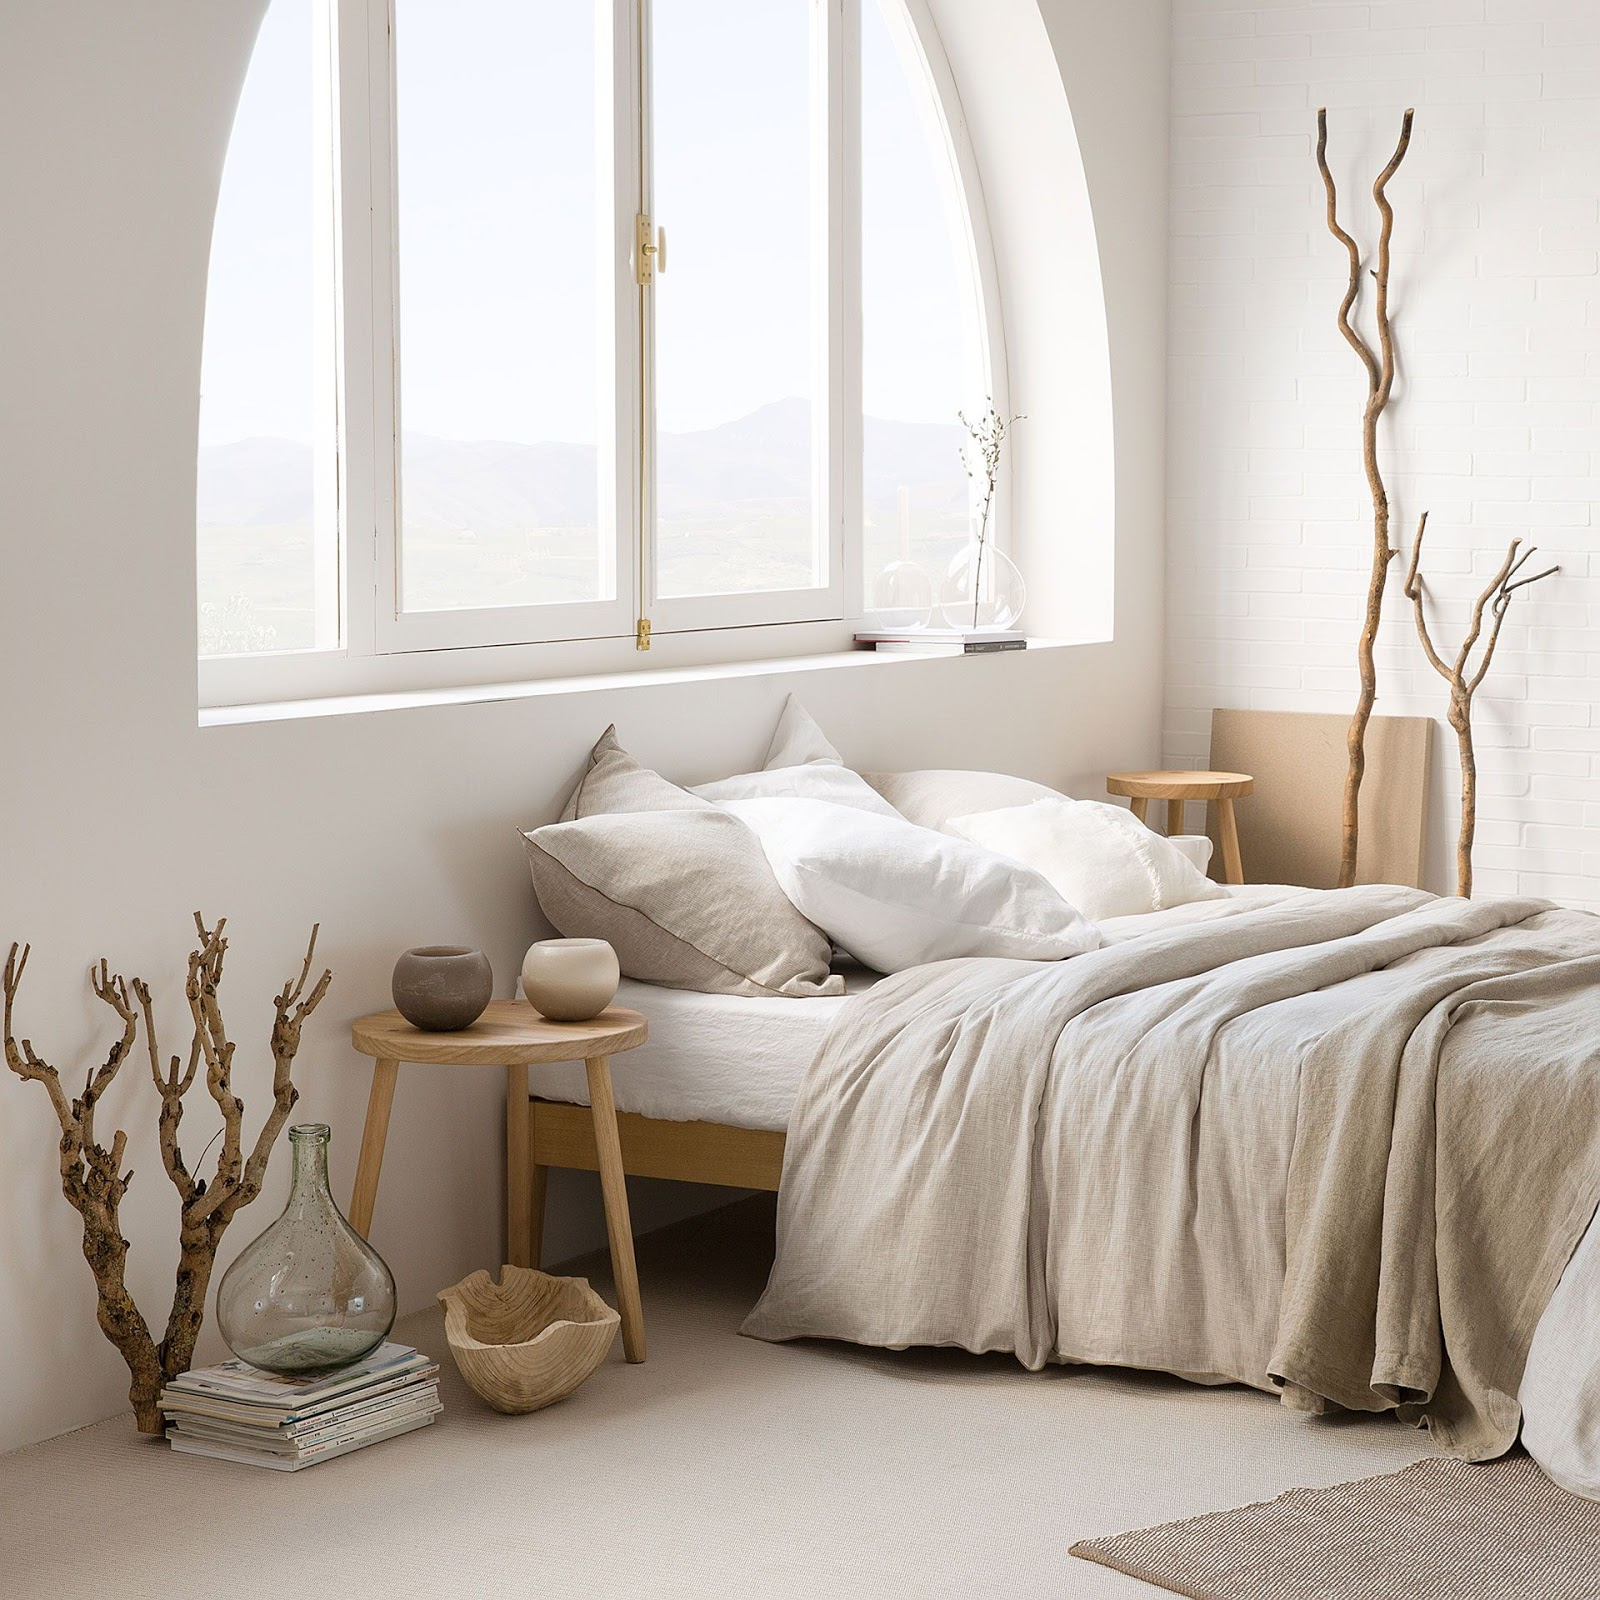 ilaria fatone - summer-mood - ethnic chic bedroom